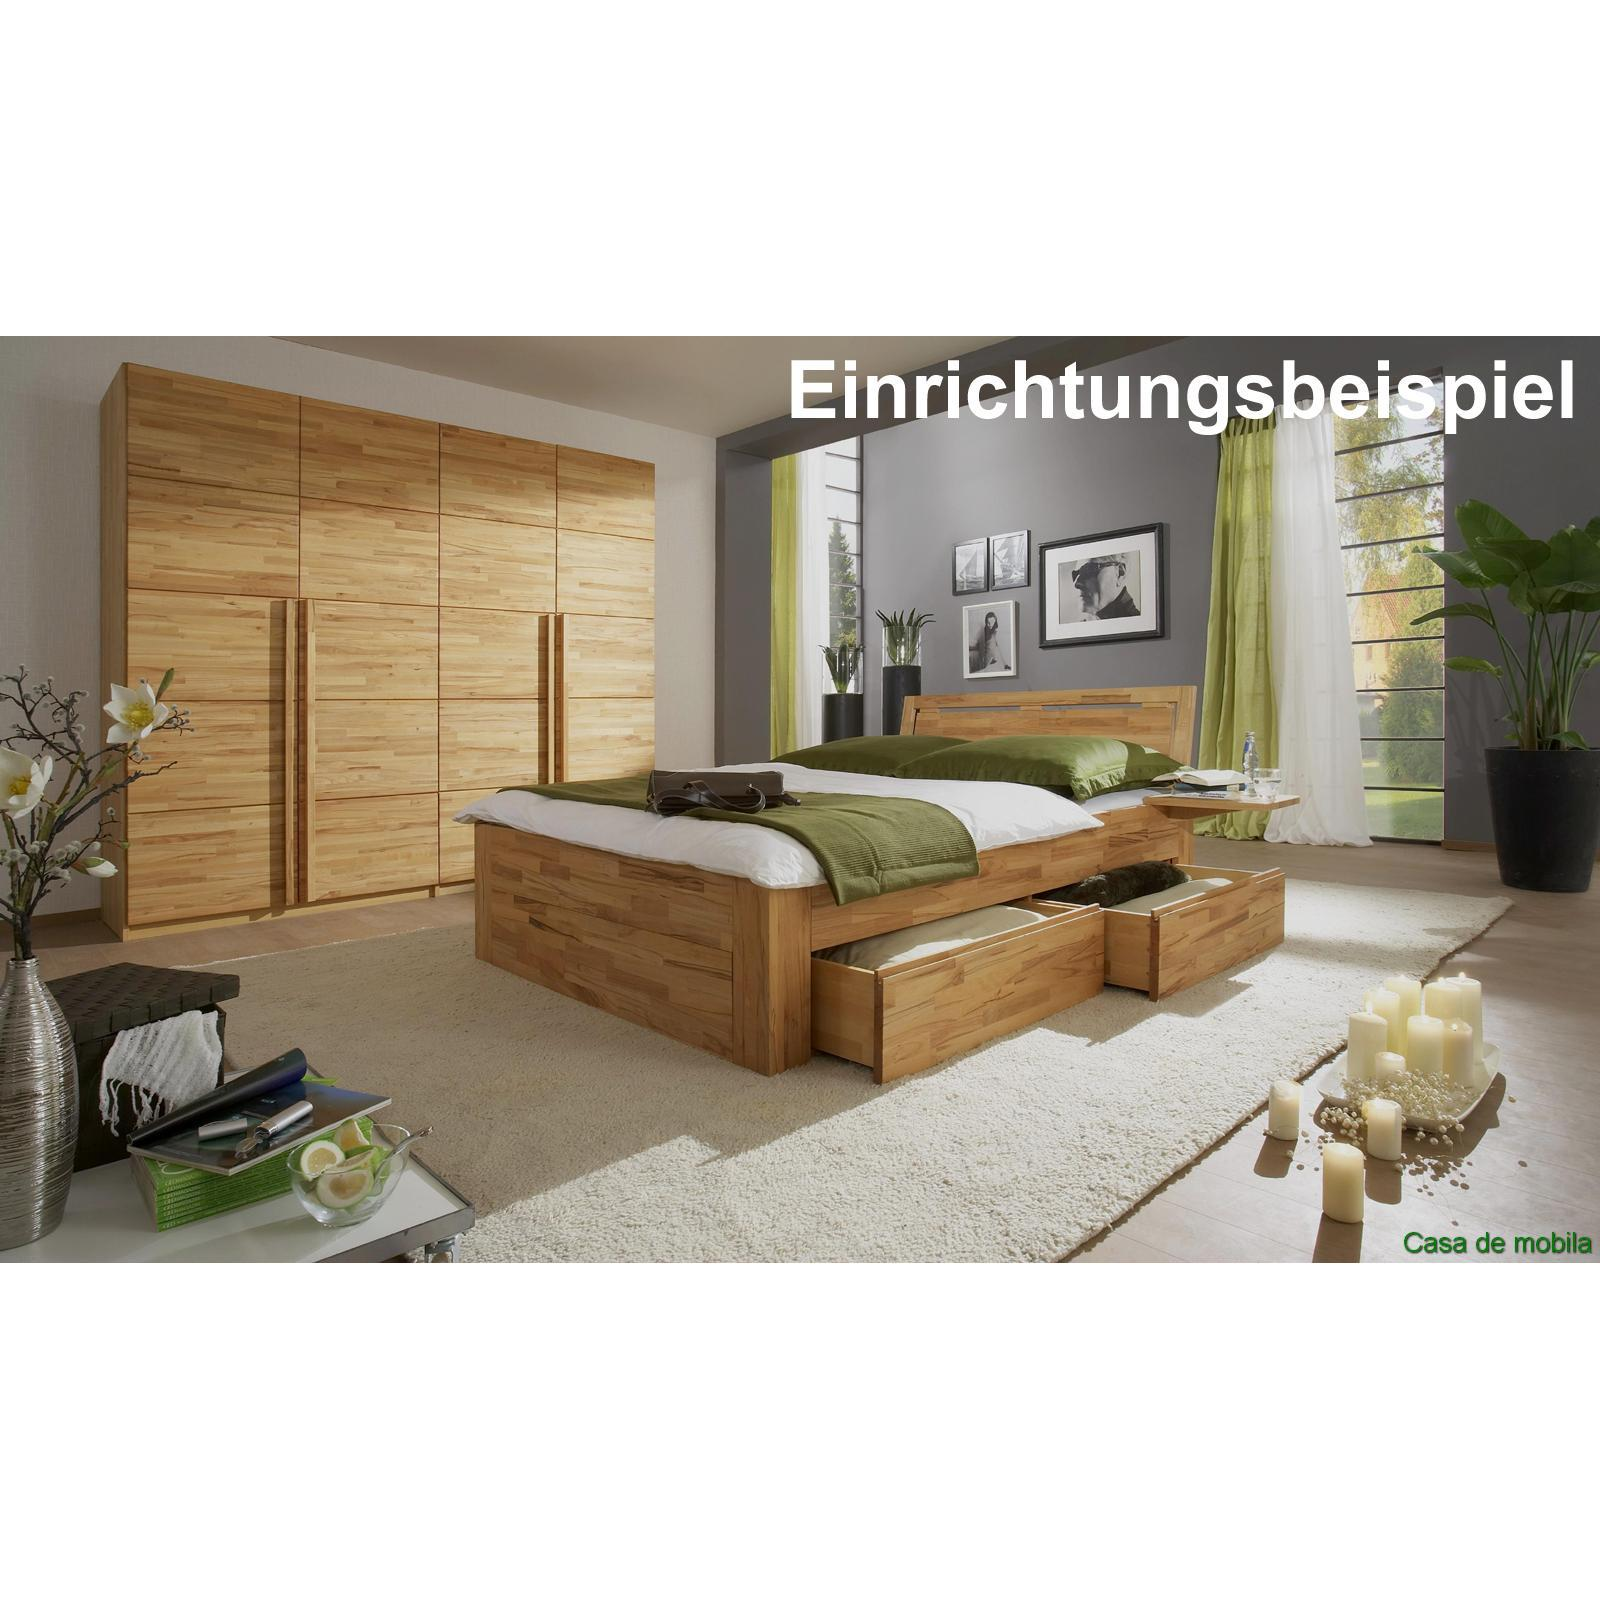 echtholz kleiderschrank eiche massiv natur ge lt front6 2 t rig wildeiche. Black Bedroom Furniture Sets. Home Design Ideas